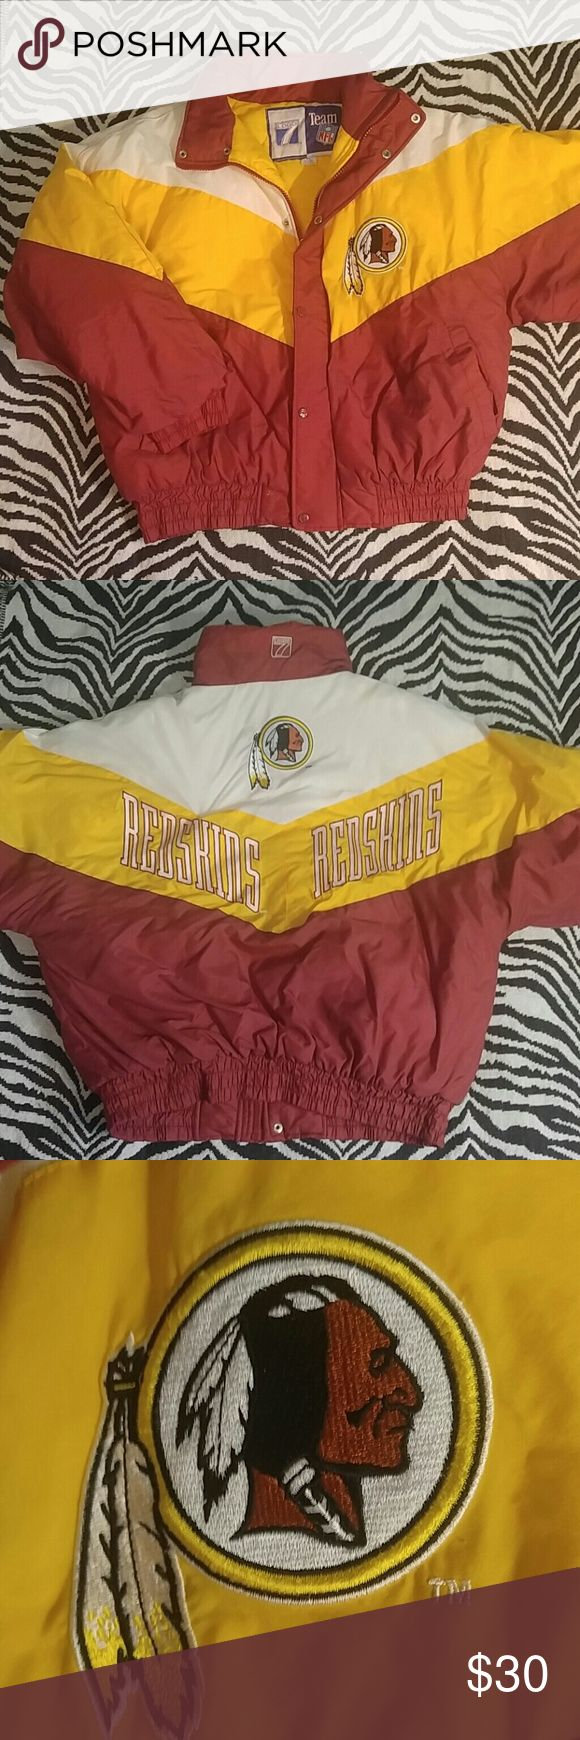 """Vintage Washington Redskins puffy jacket XL Super rare and stylish vintage Redskins coat made by Logo 7. This is authentic NFL gear from way back but still in excellent condition. This jacket is quilted on the inside to keep you warm all winter! Length (minus collar) 27"""", Width 26"""" Jackets & Coats"""